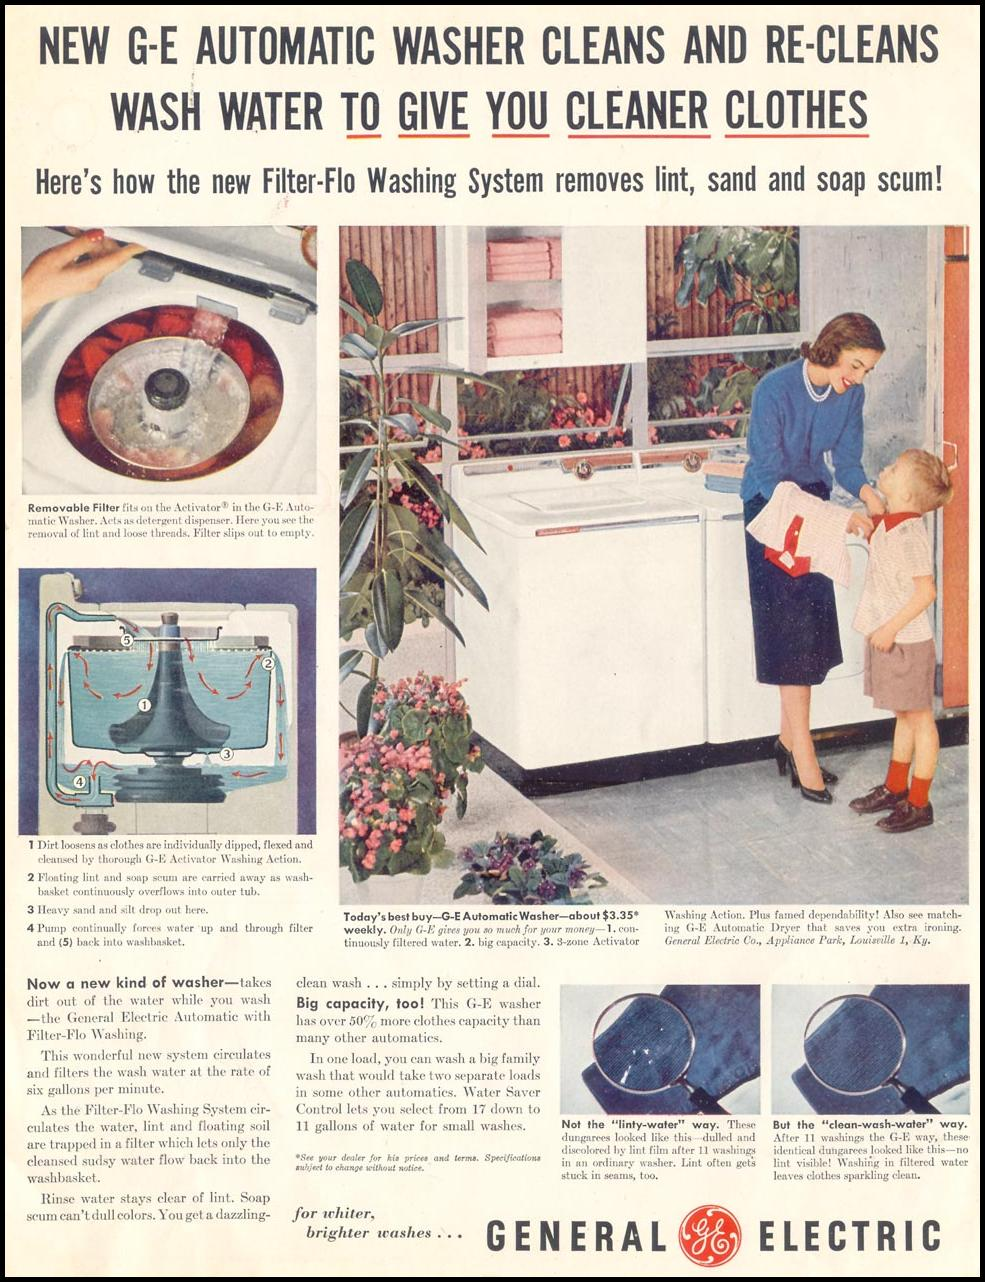 GENERAL ELECTRIC FILTER-FLO WASHING MACHINES